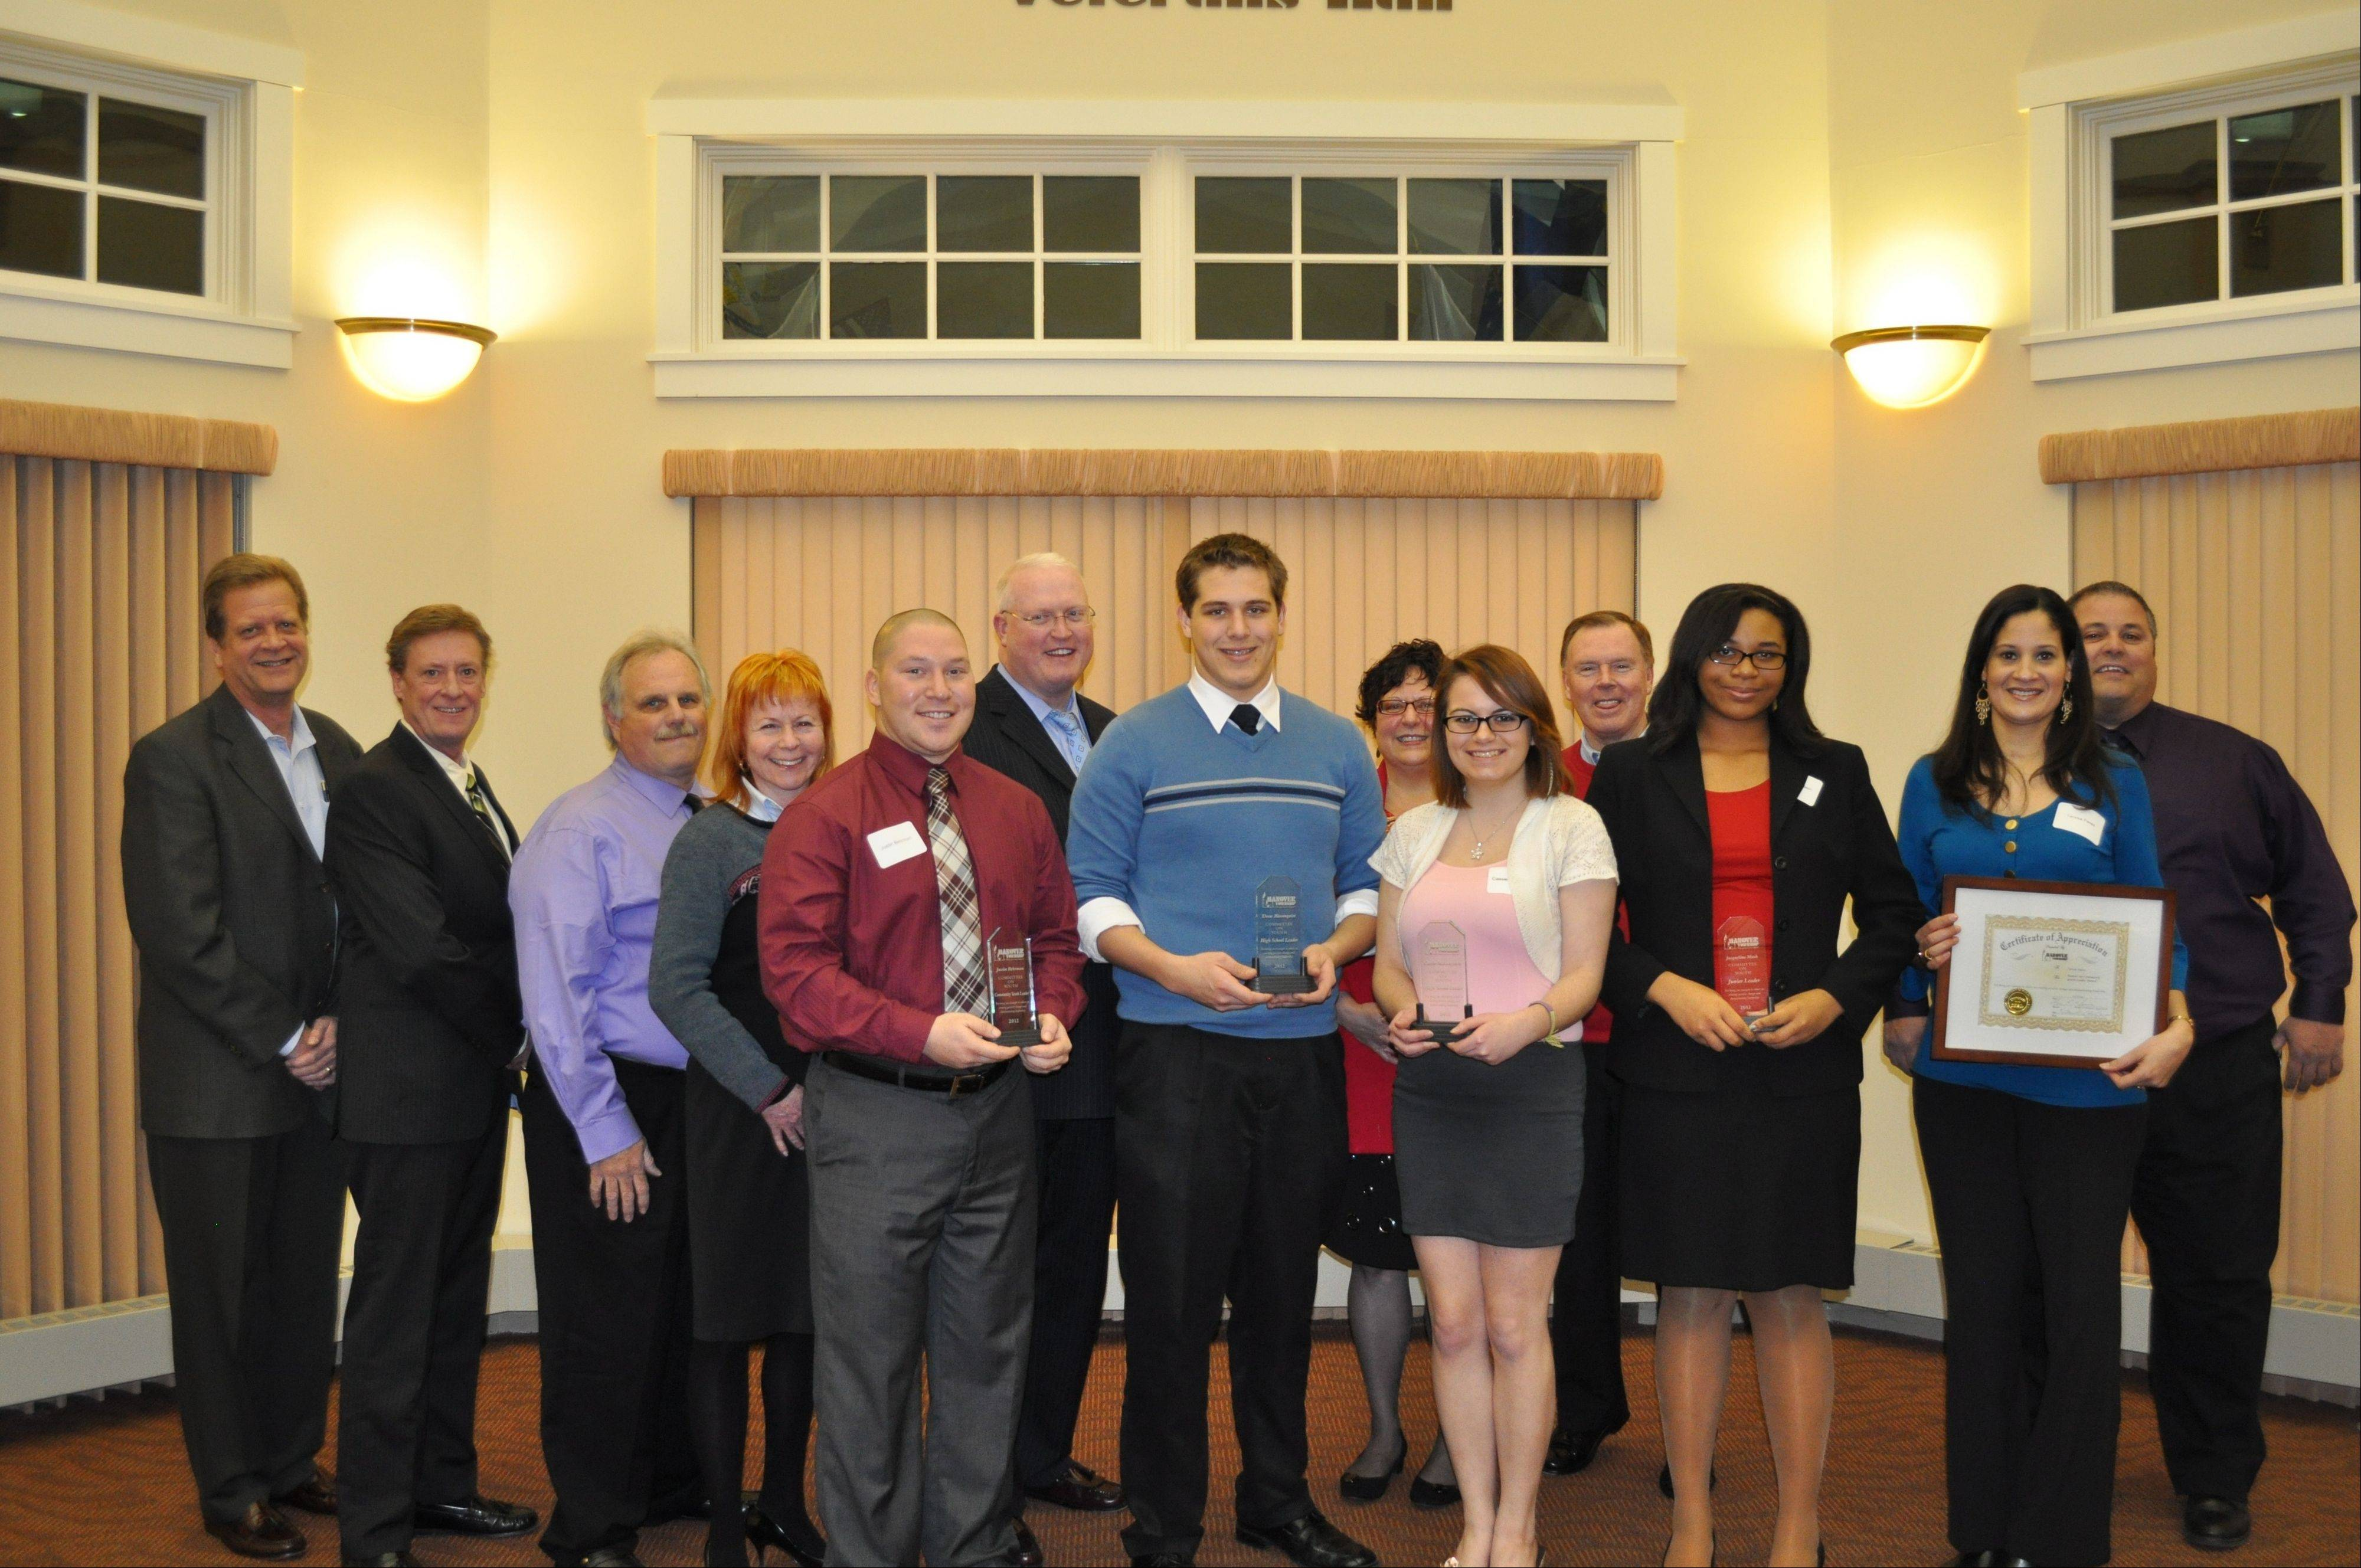 Hanover Township salutes youth leaders